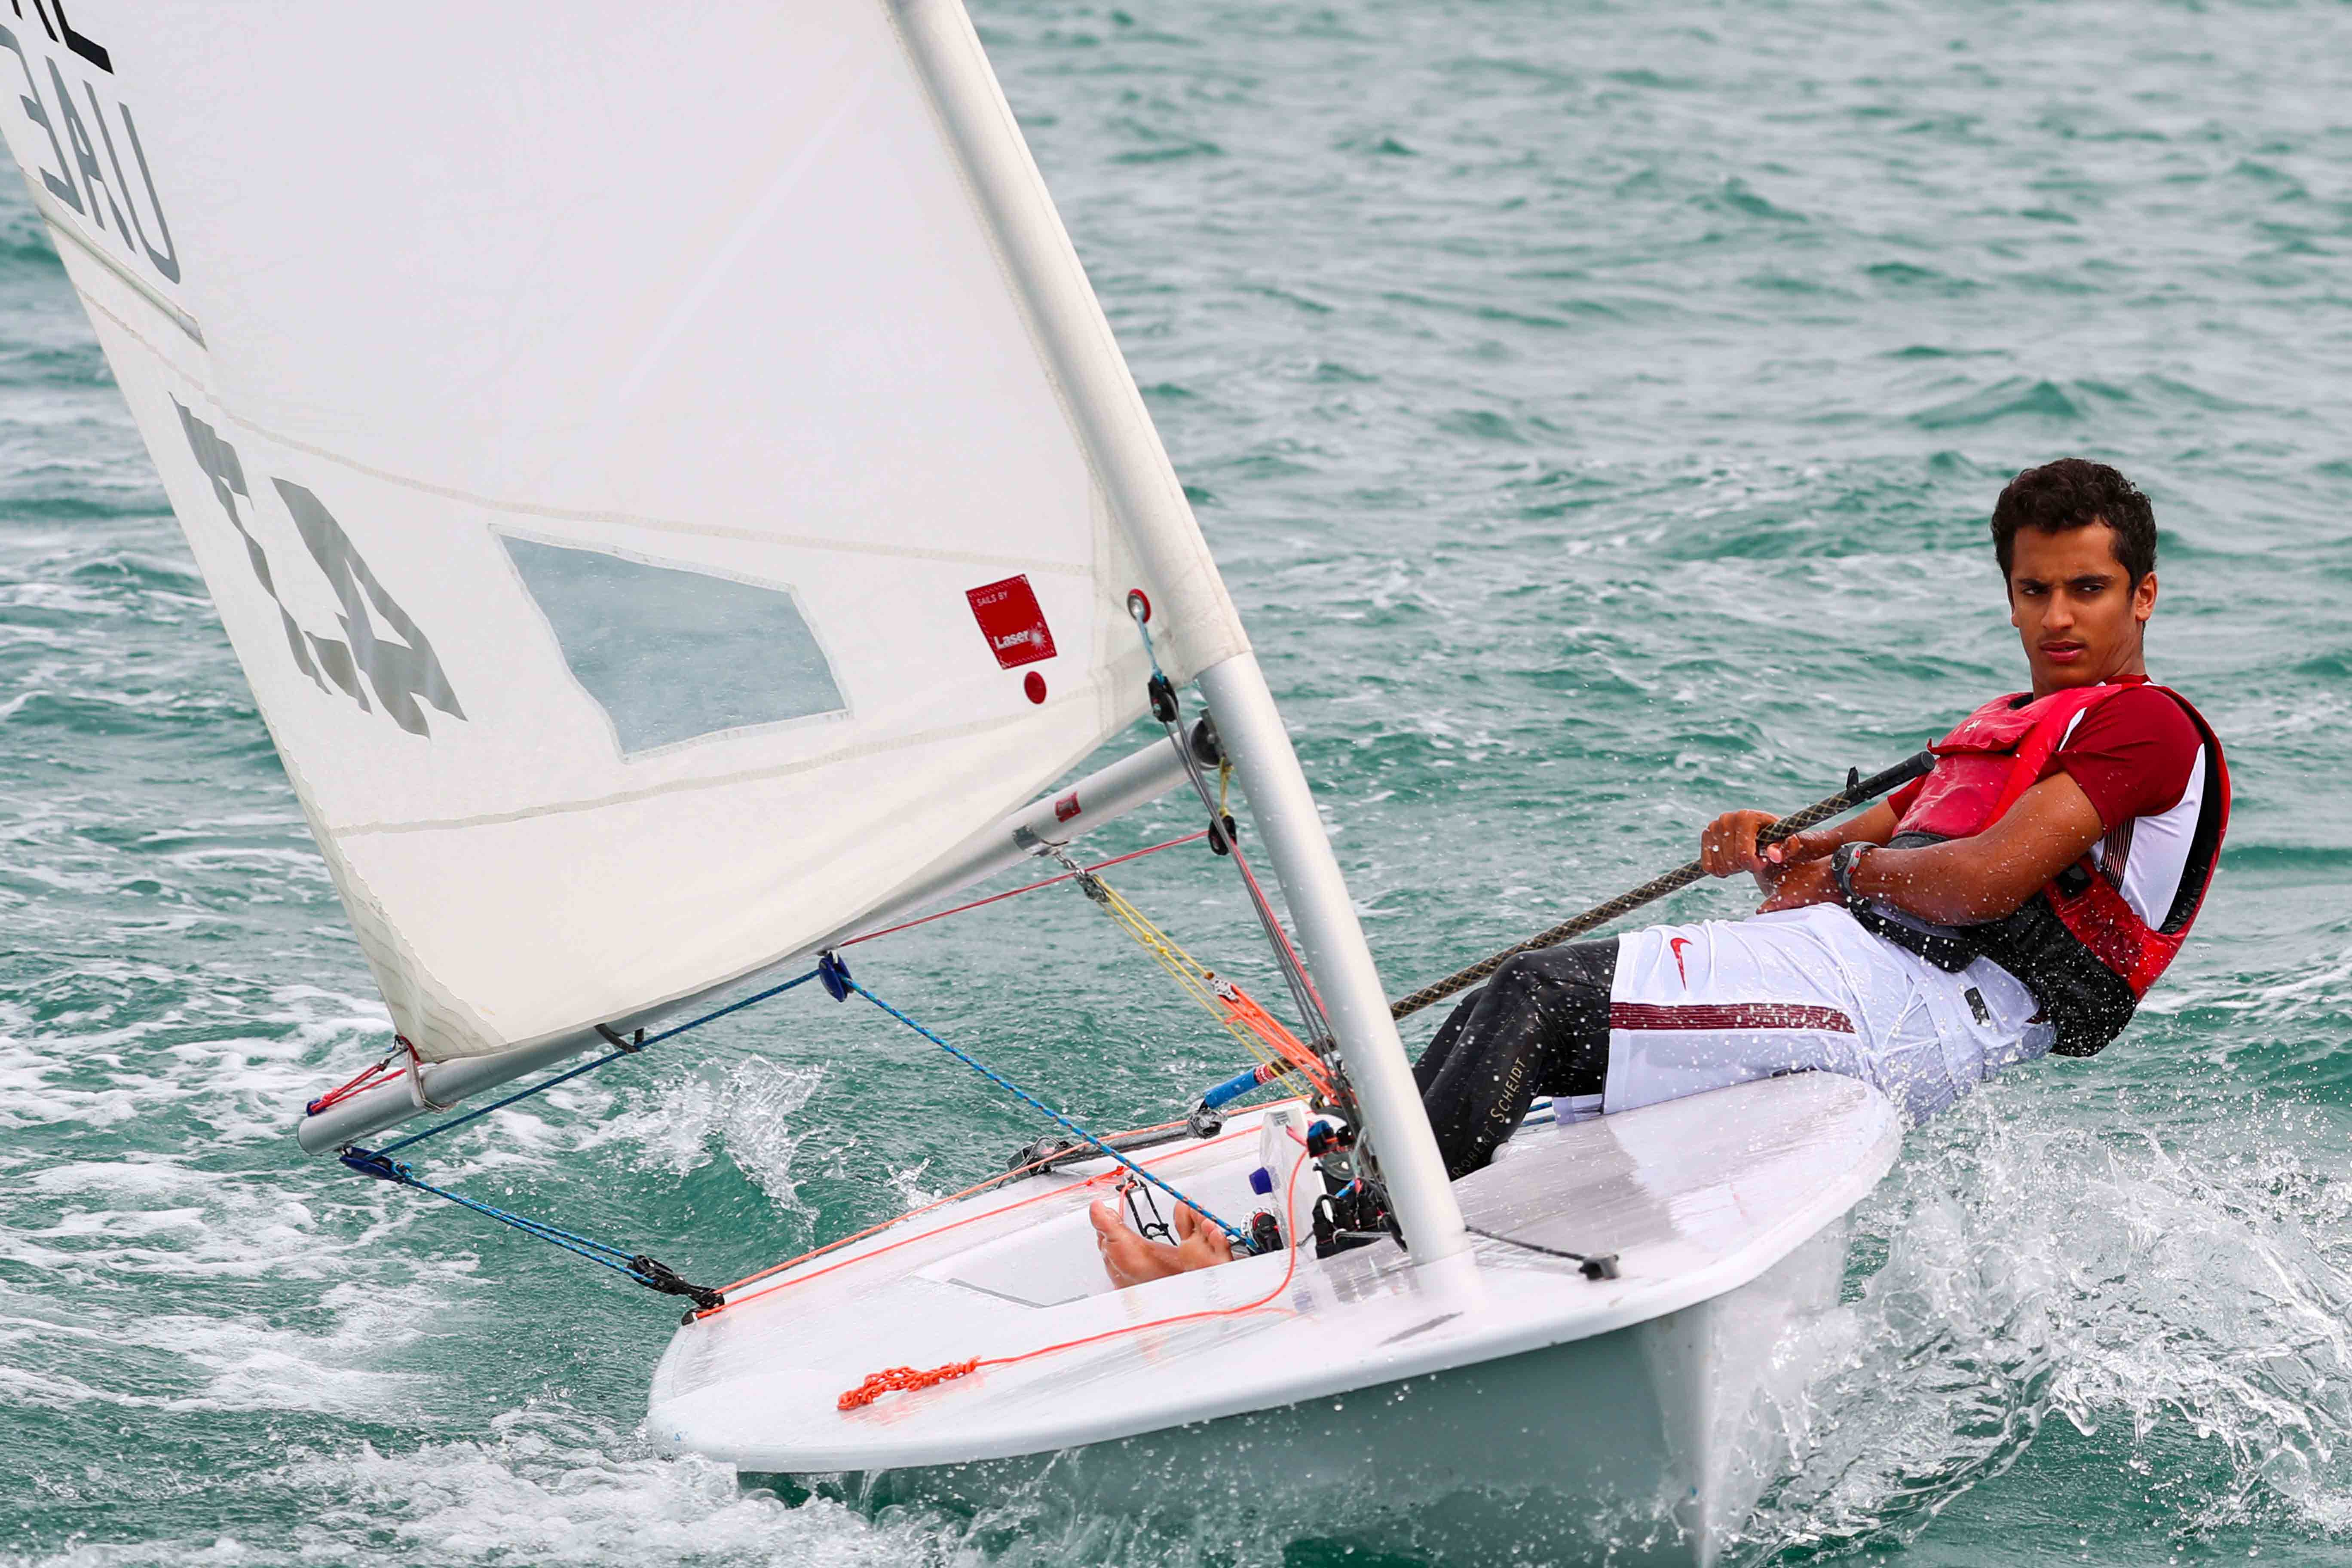 Final Round of Dubai Junior Regatta on Saturday